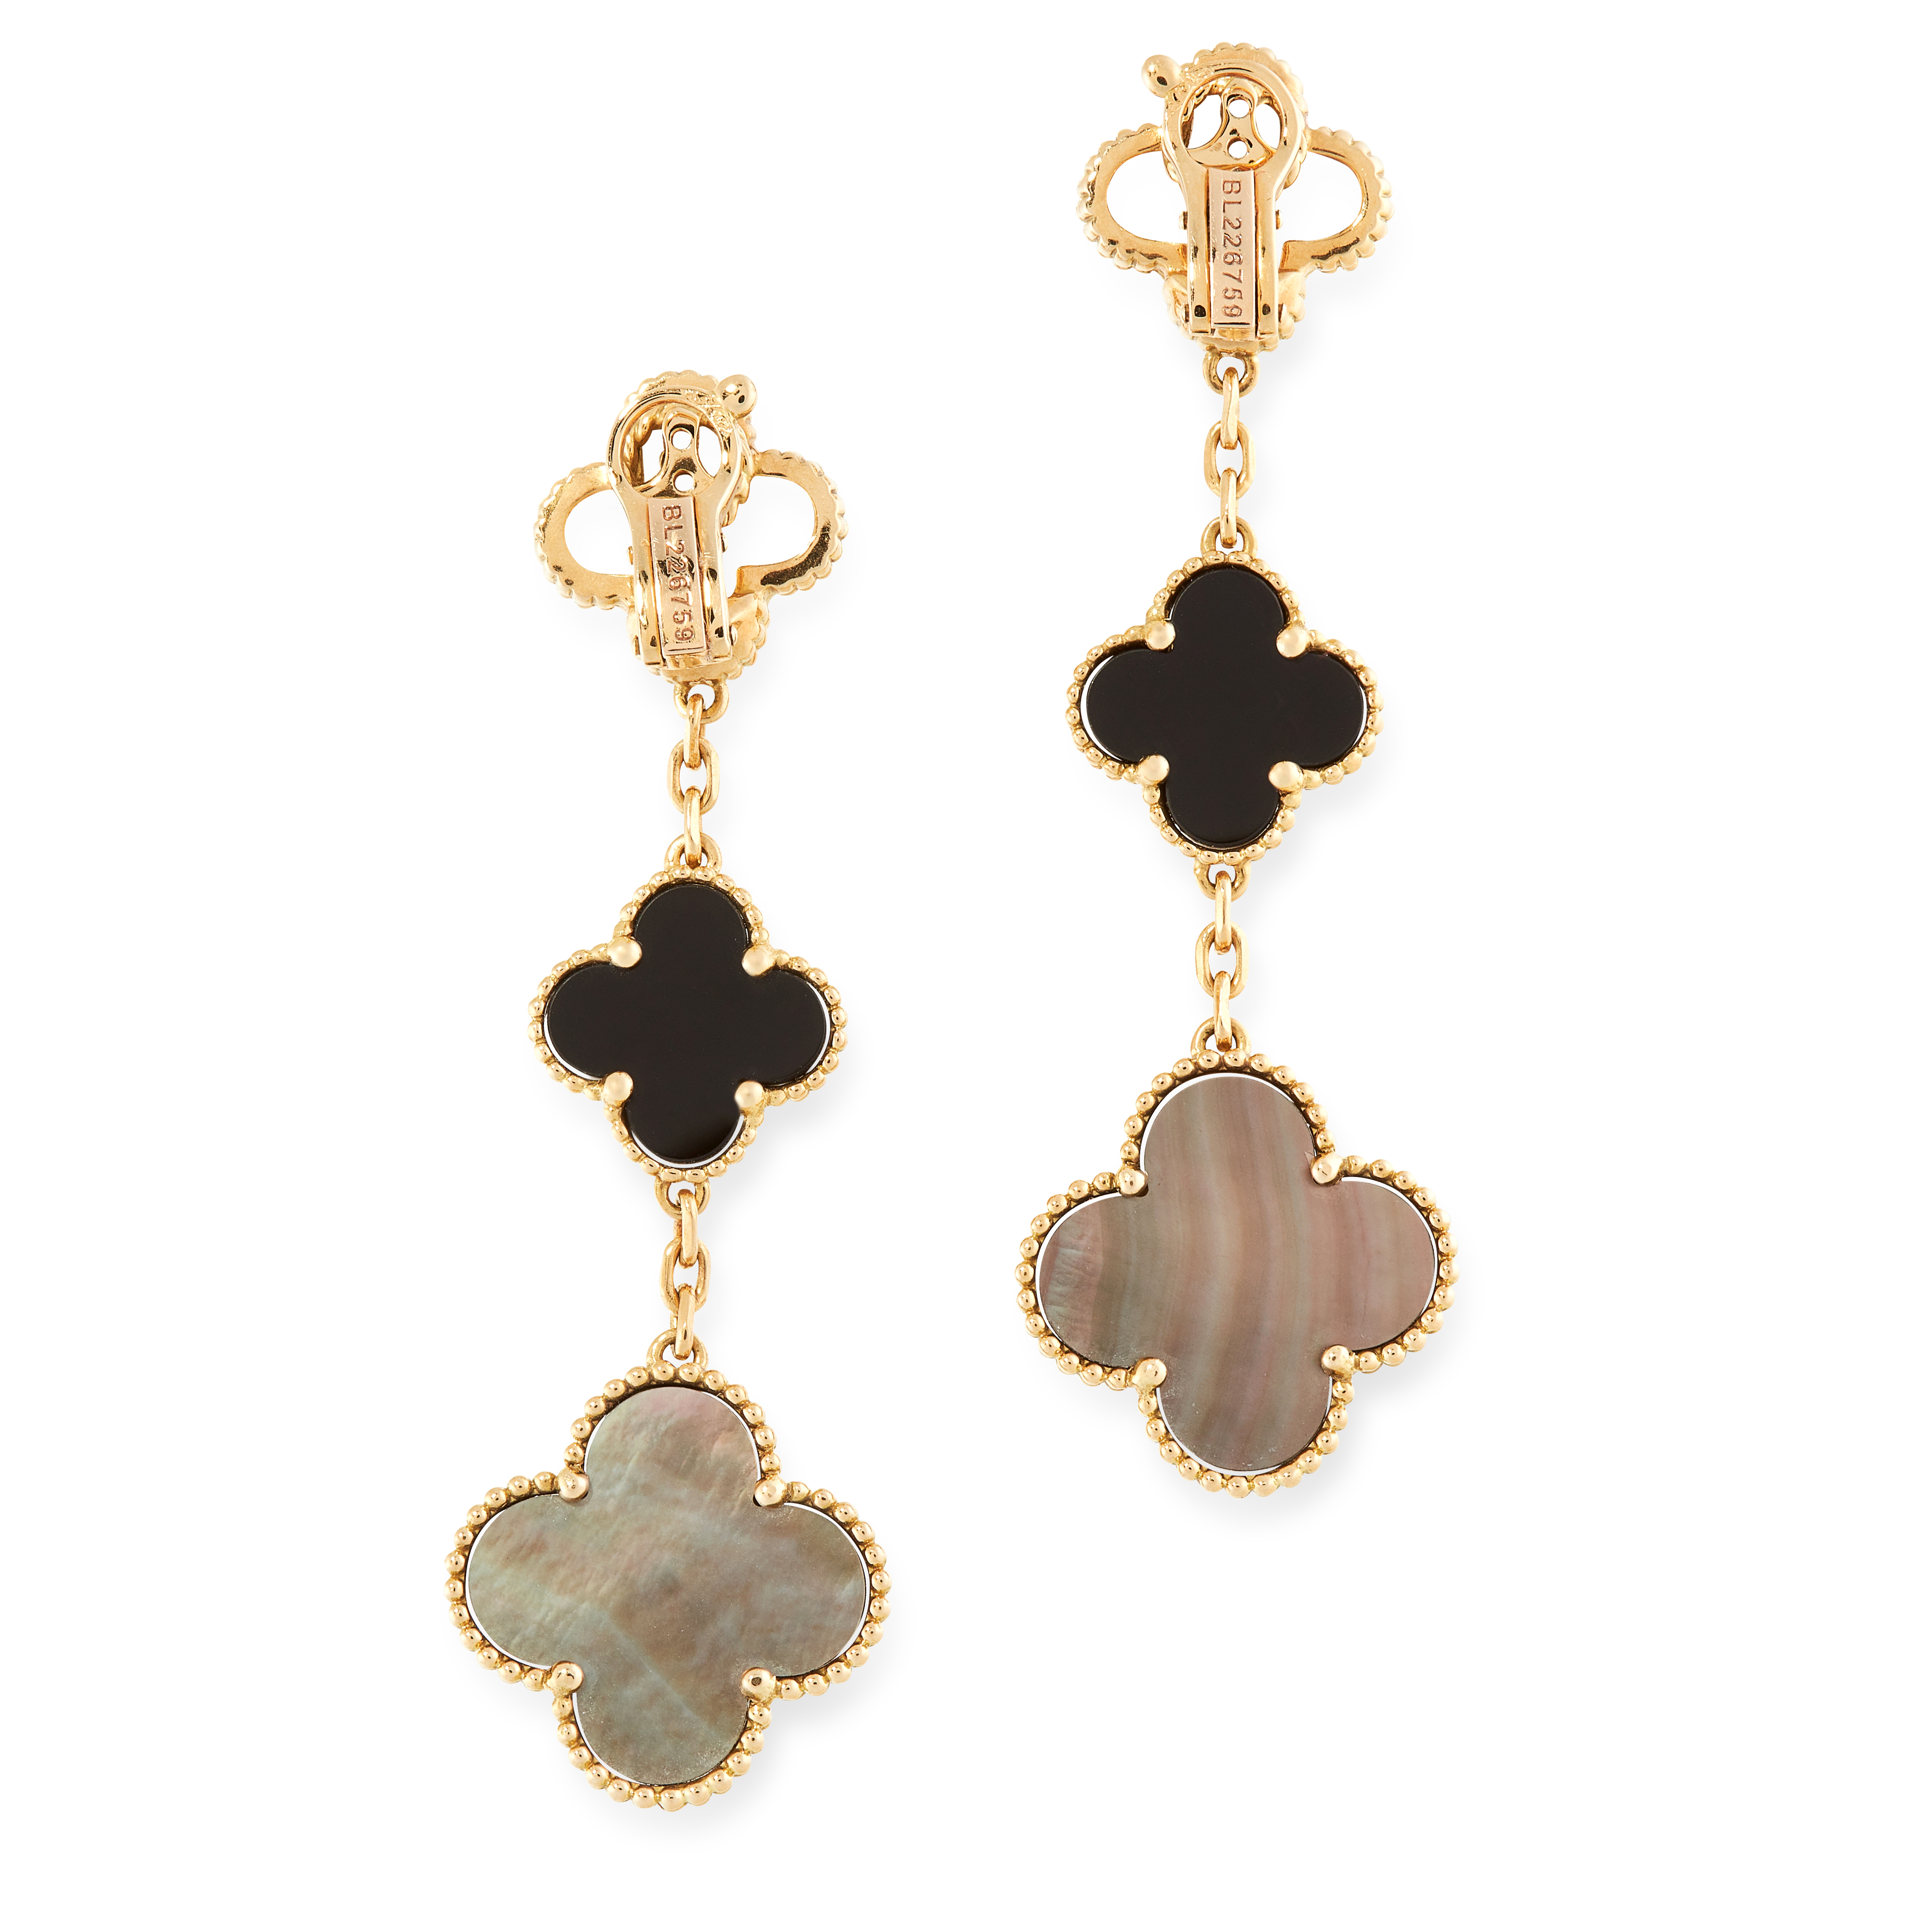 A PAIR OF MOTHER OF PEARL AND ONYX ALHAMBRA EARRINGS, VAN CLEEF & ARPELS in 18ct yellow gold, each - Image 2 of 2